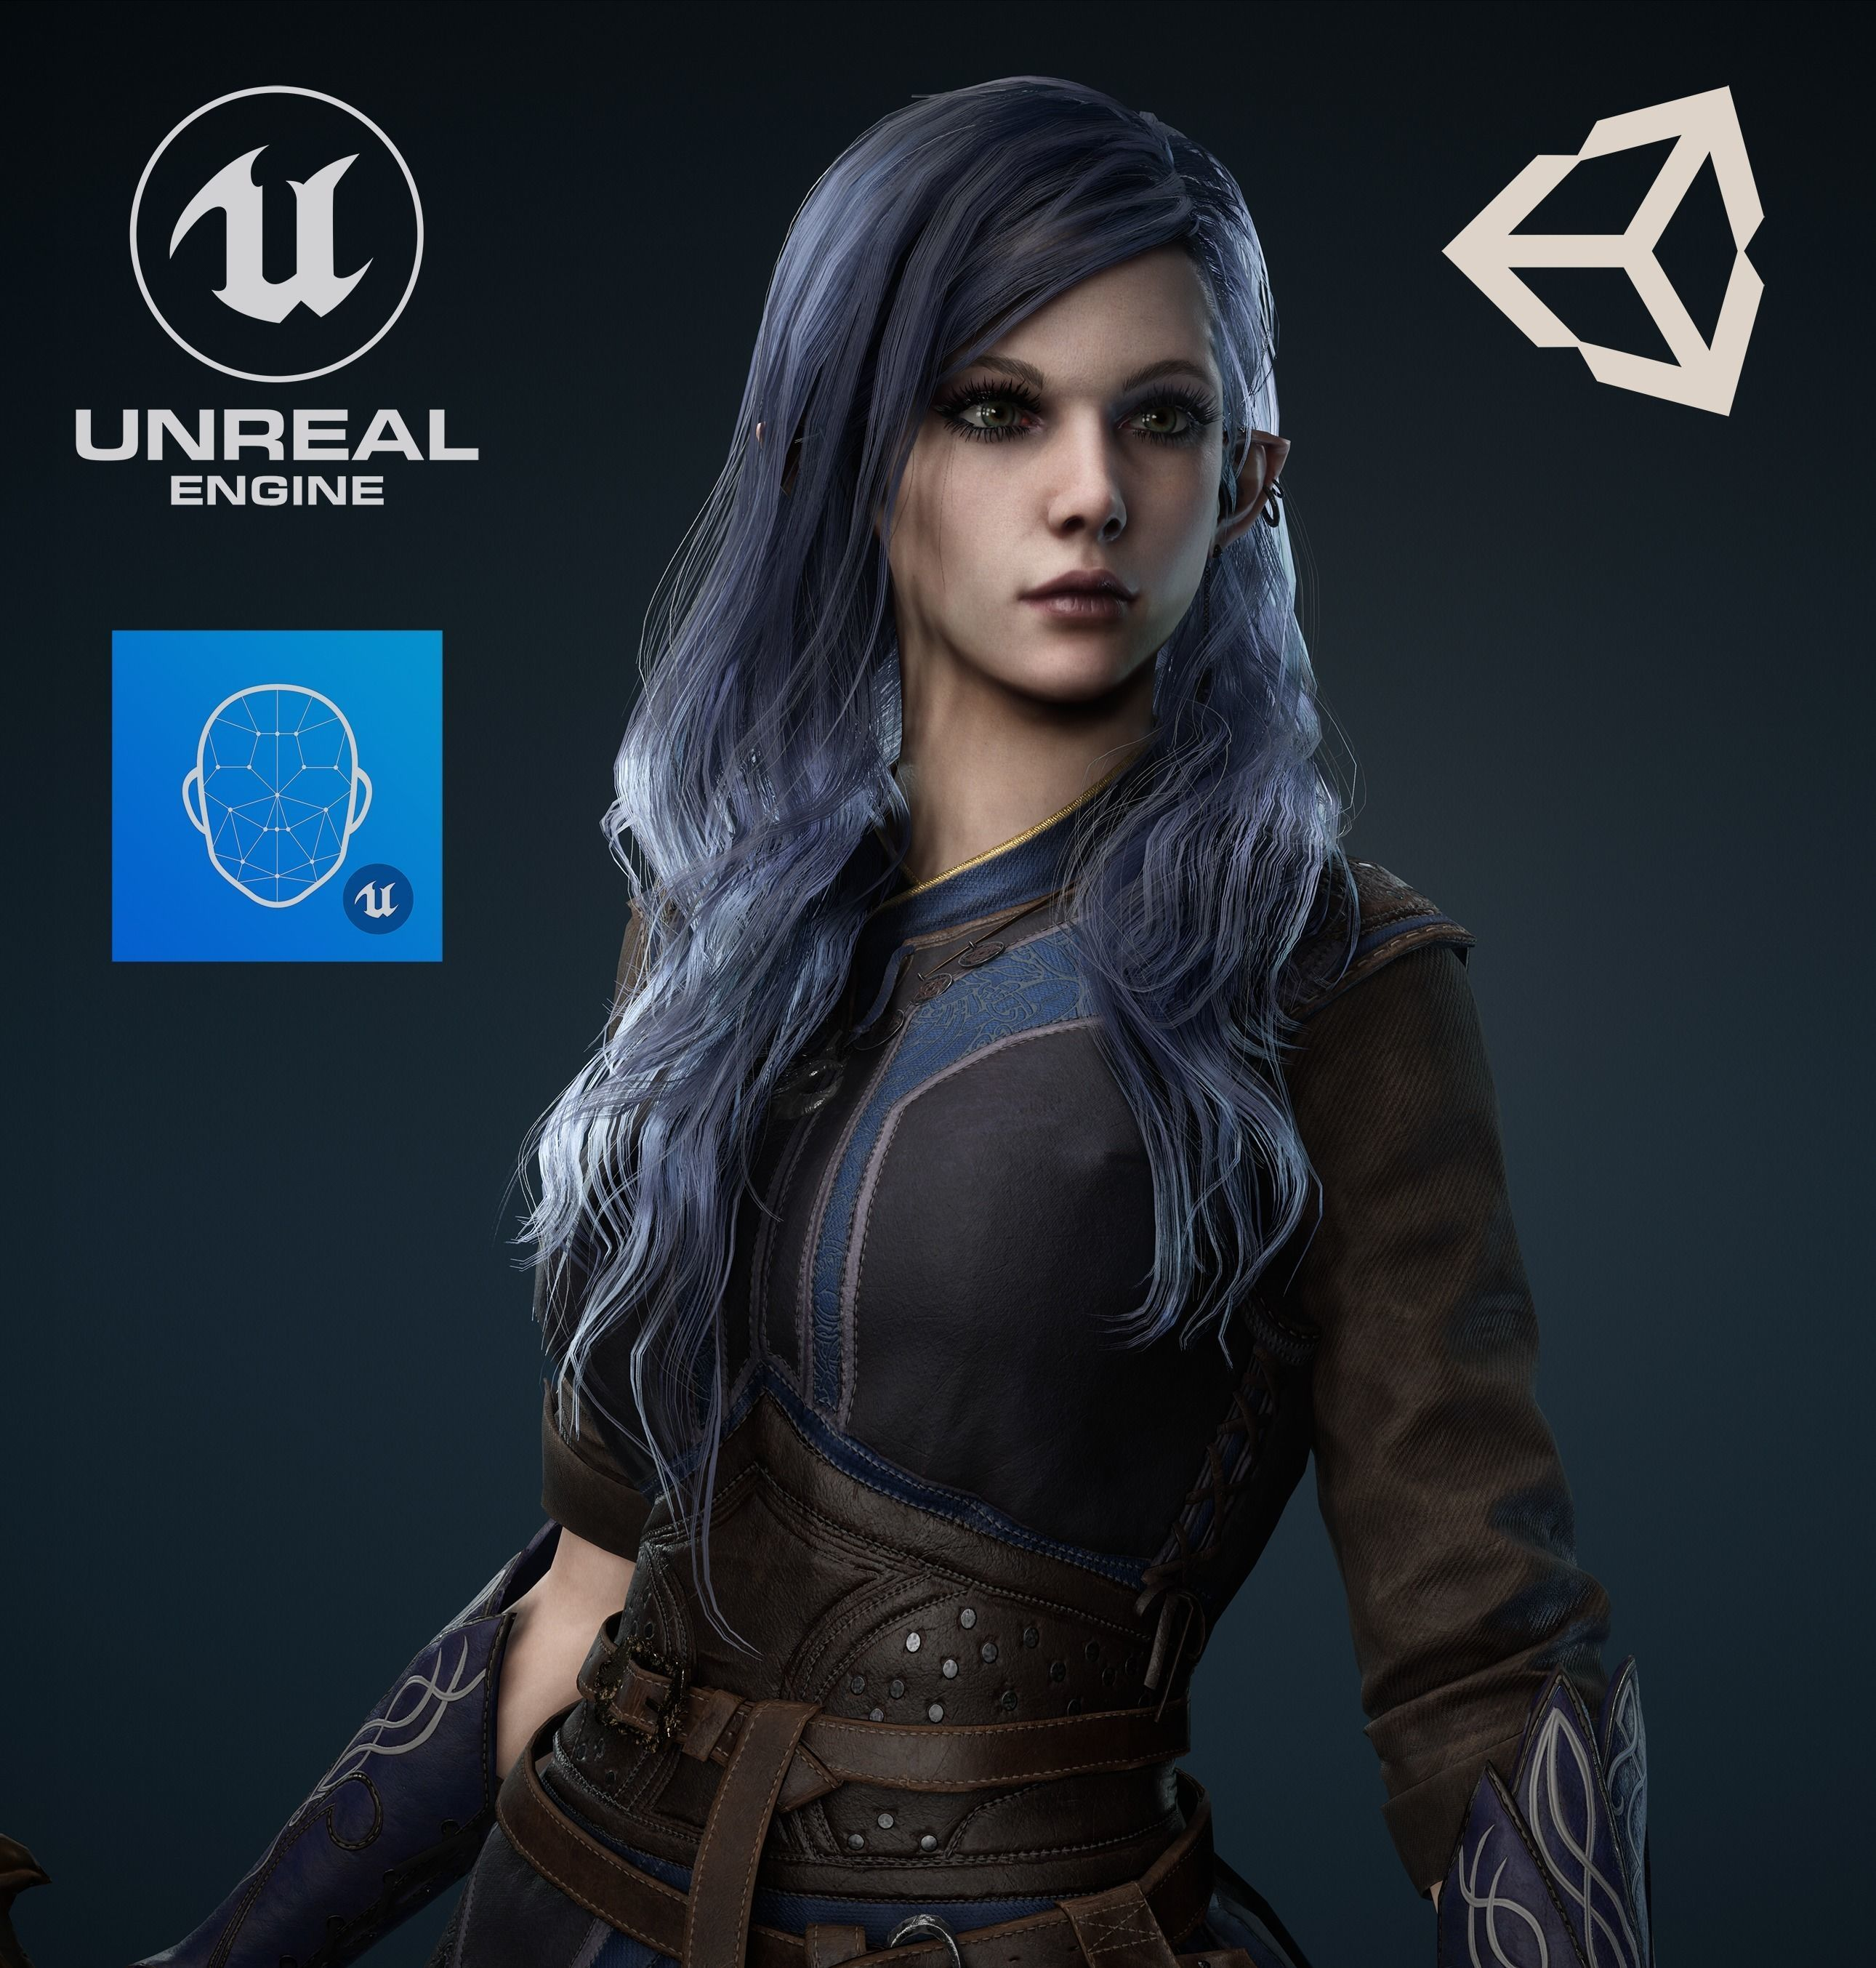 Medieval Fantasy girl - Game Ready Low-poly 3D model